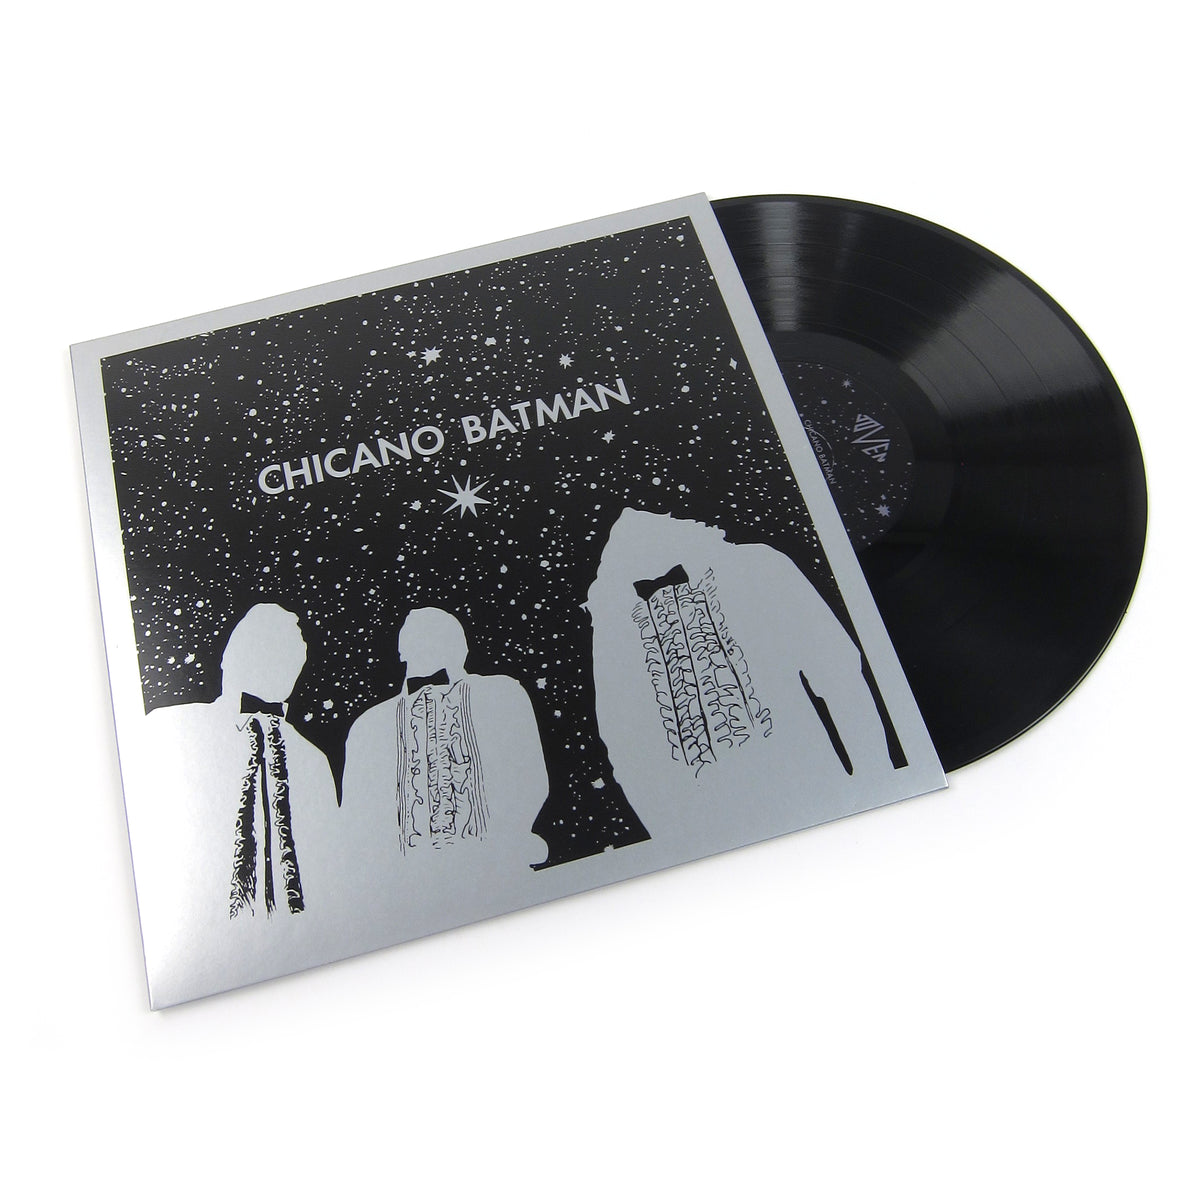 Chicano Batman: Chicano Batman Vinyl LP (Record Store Day)